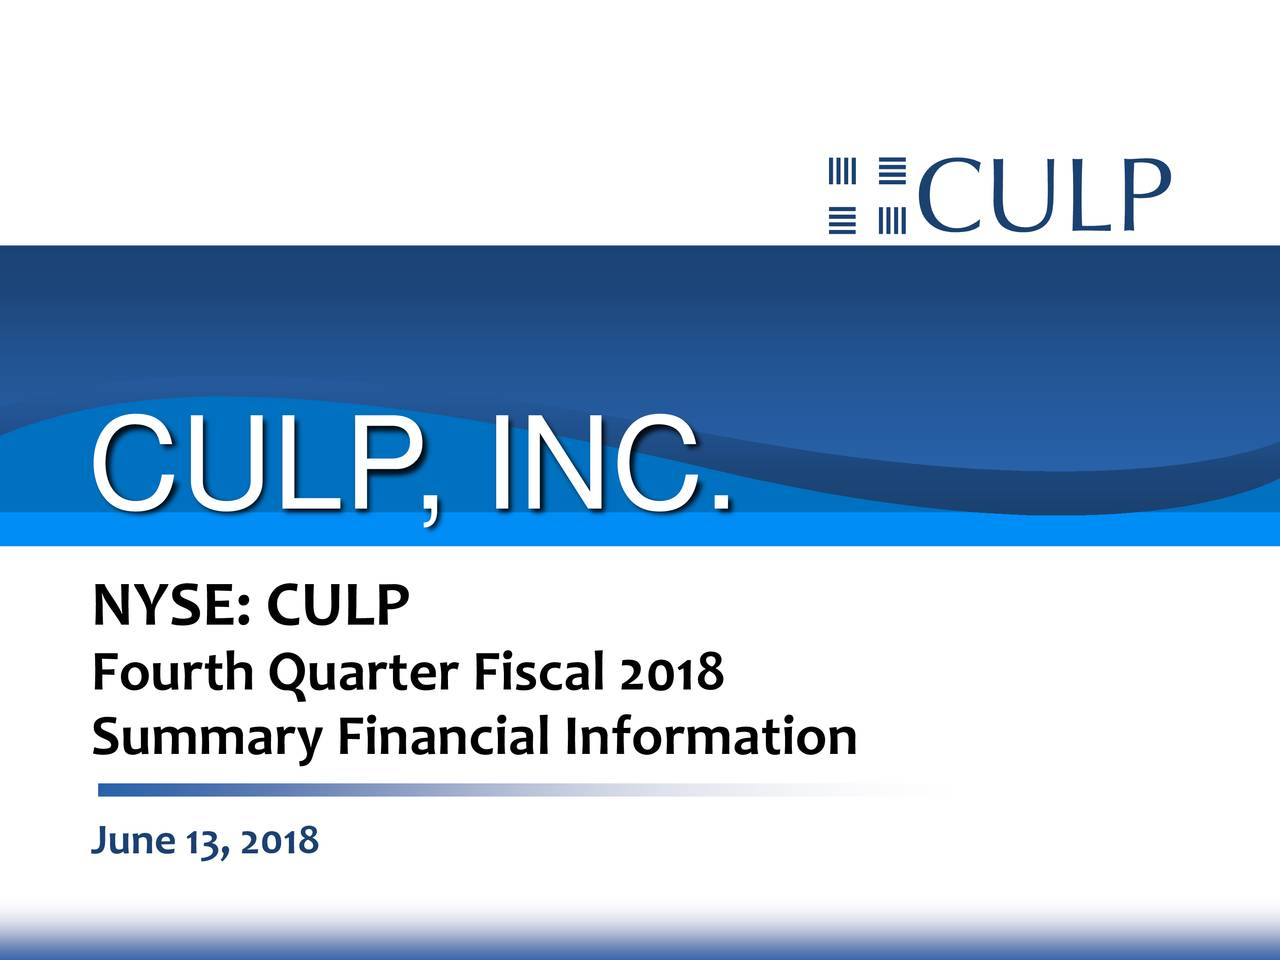 NYSE: CULP Summary Financial Information June 13, 2018